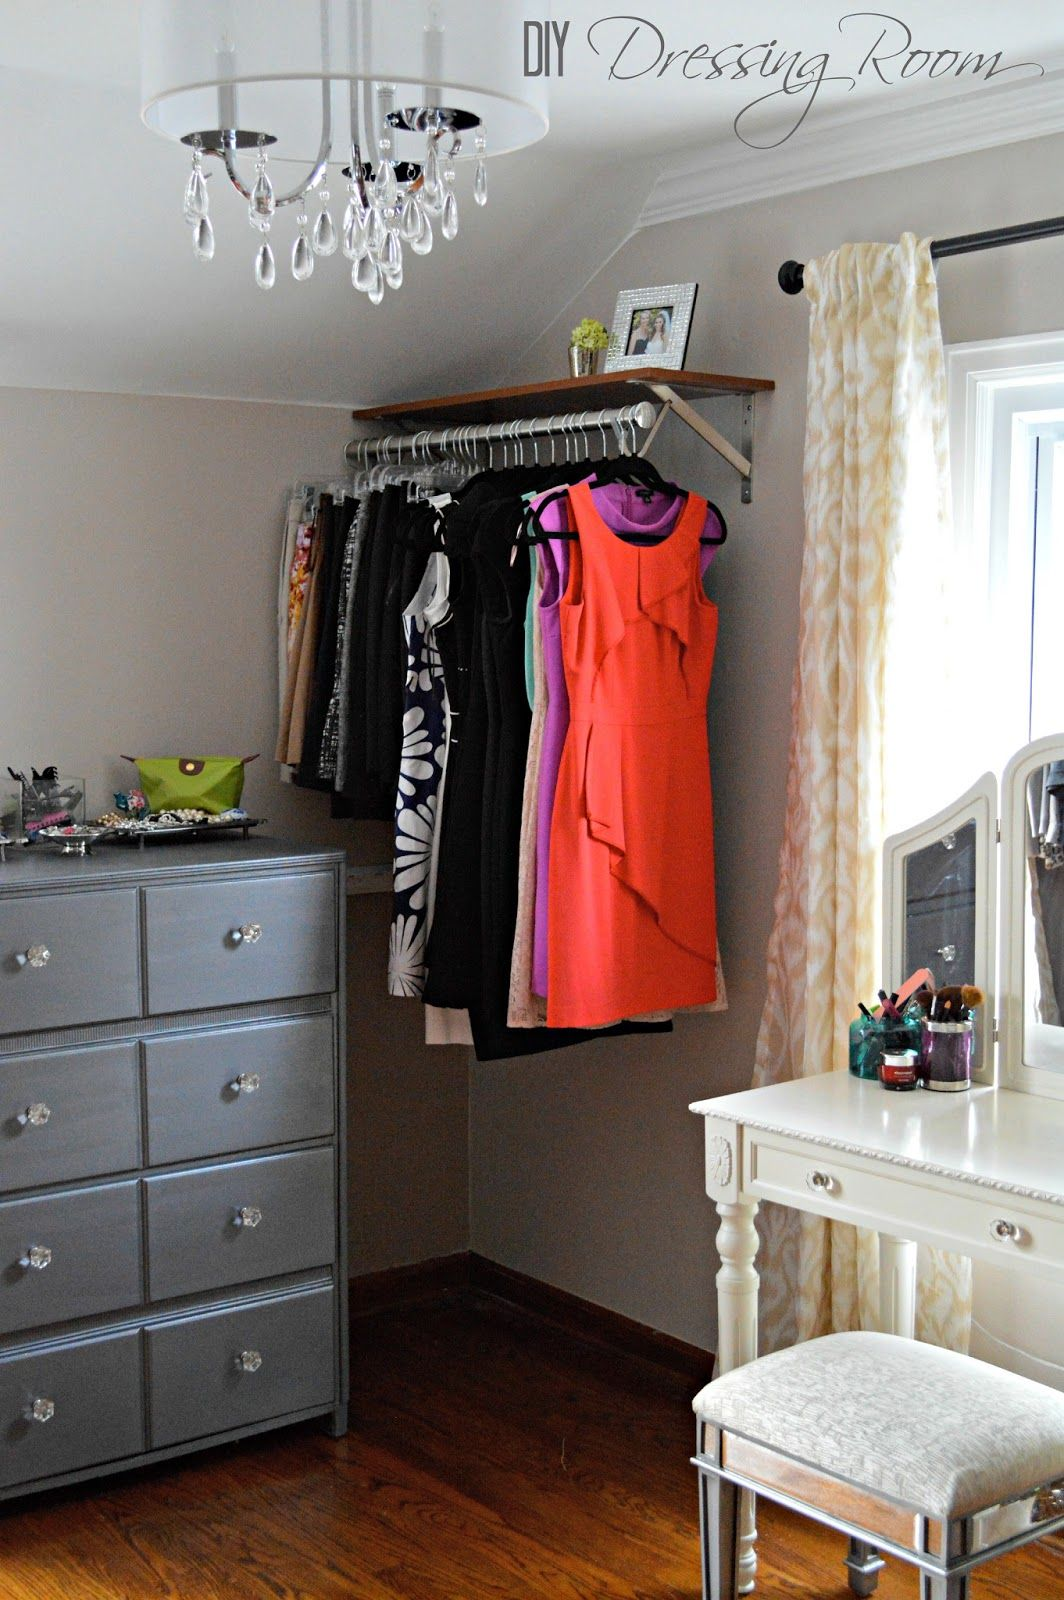 Kleiderschrank Vintage Diy Inexpensive Dress Room Check Out This Gorgeous Converted Bedroom